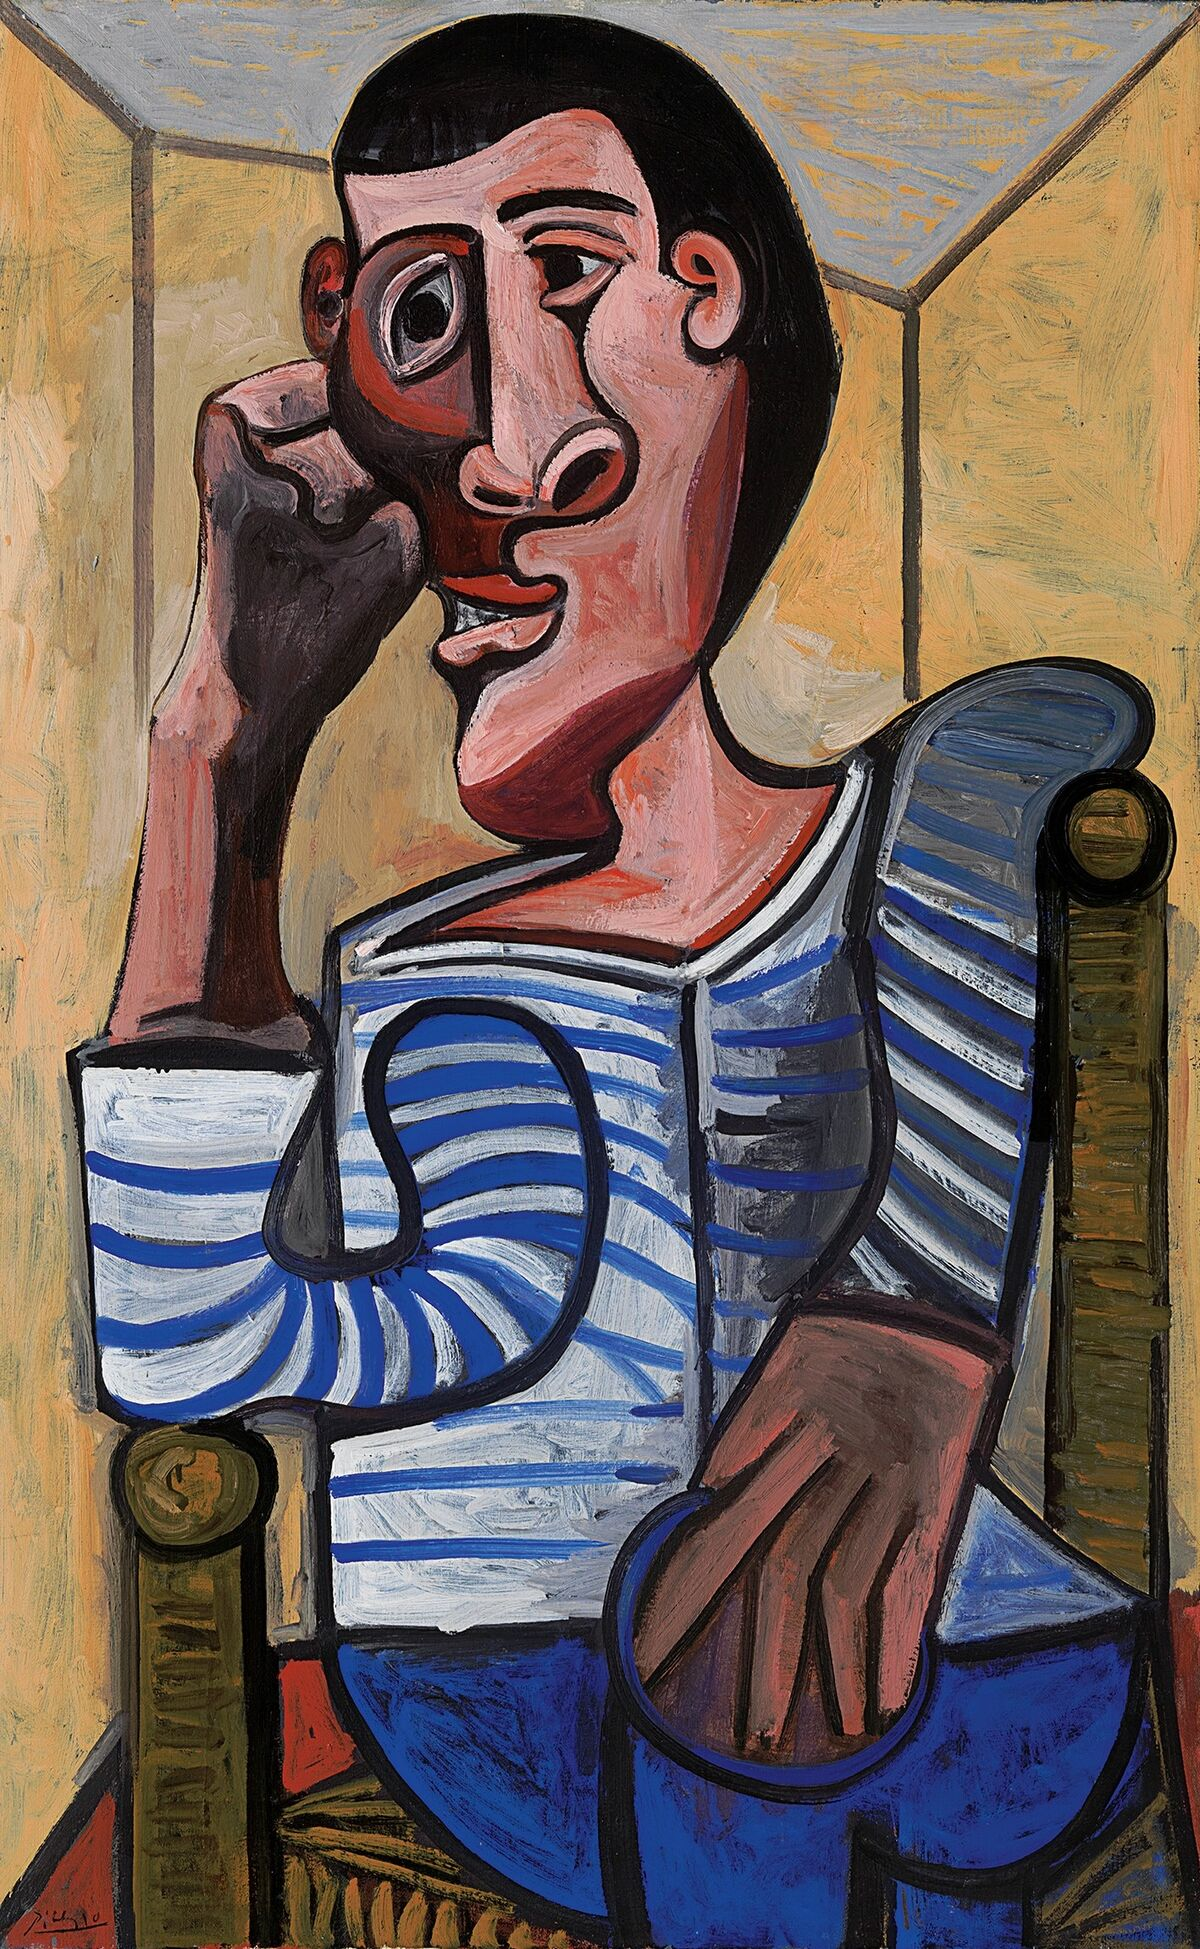 Pablo Picasso, Le Marin, 1943. © Estate of Pablo Picasso / Artists Rights Society (ARS), New York. Courtesy of Christie's.